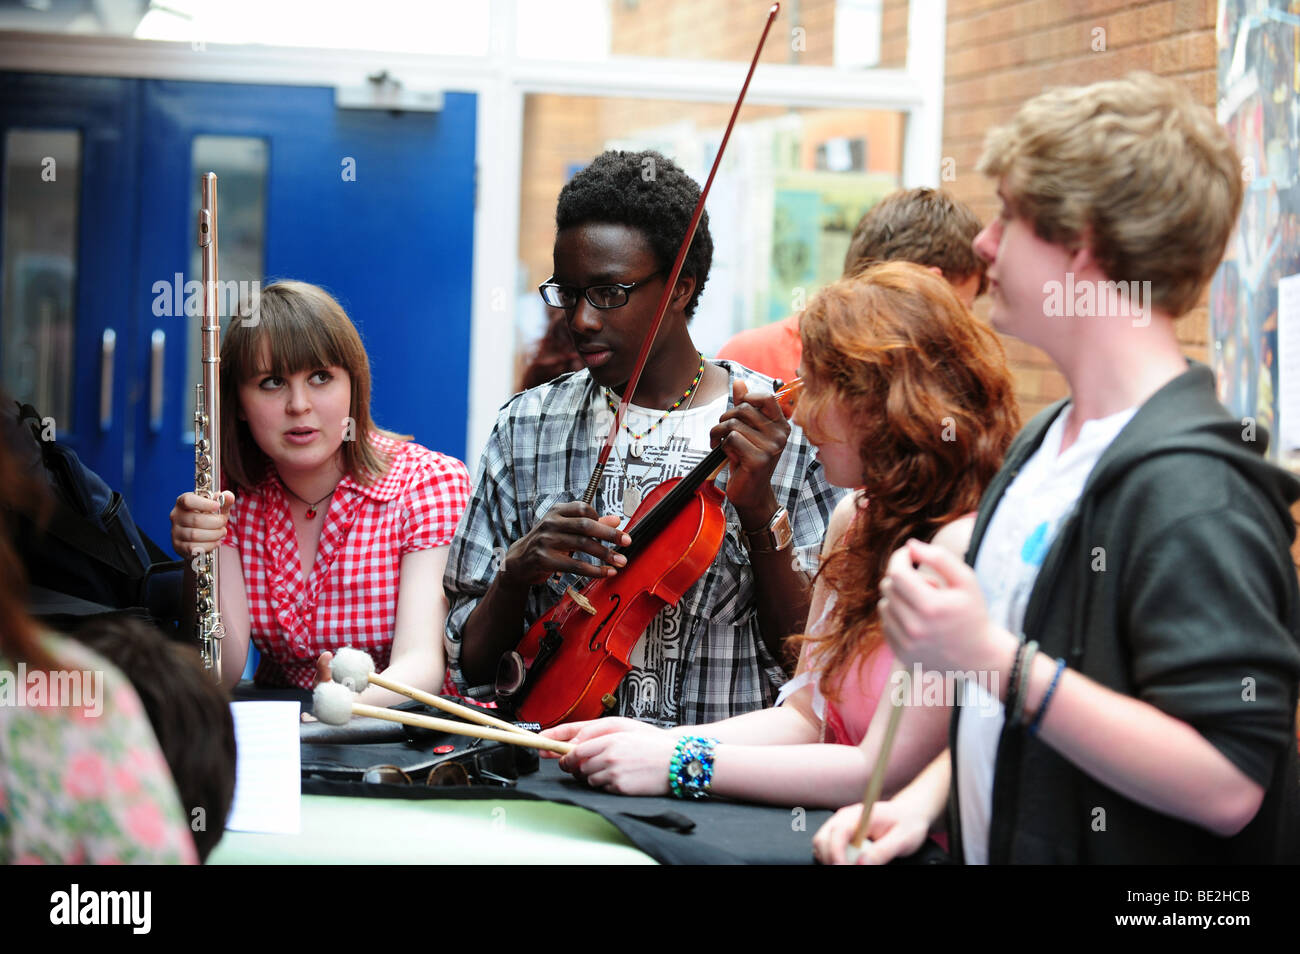 Students rehearse for music class at sixth form further education college Stock Photo